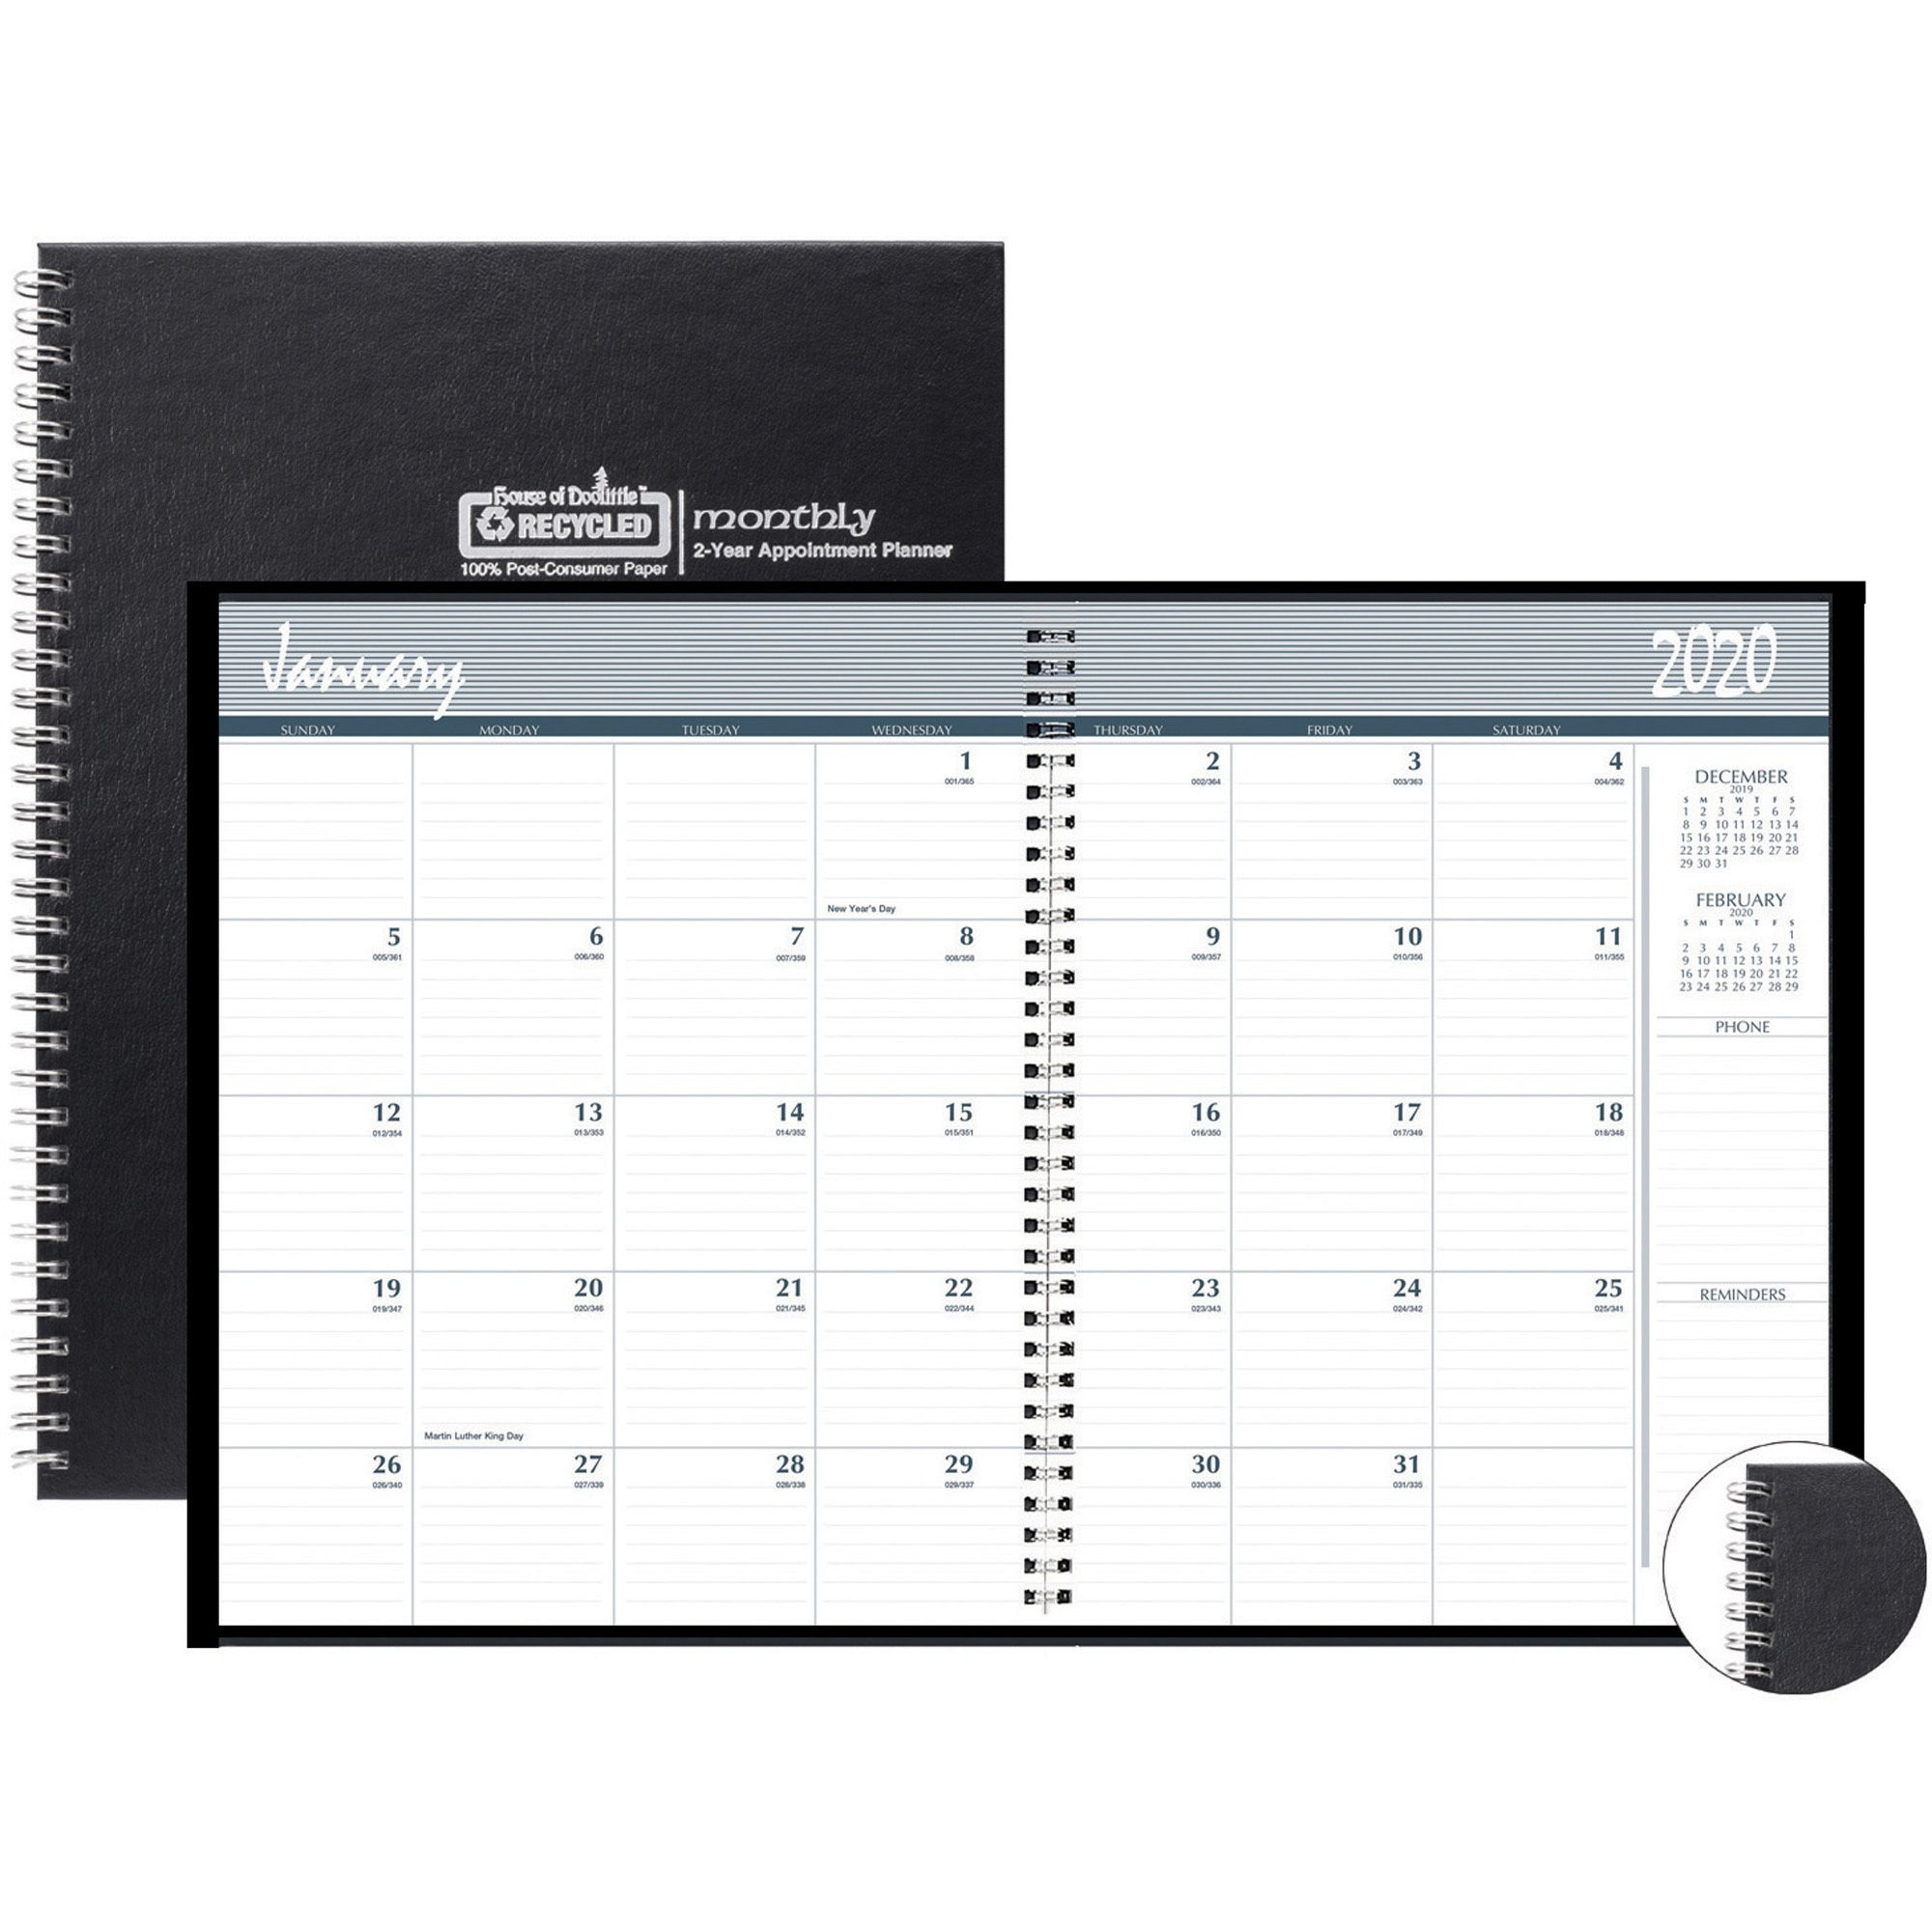 House Of Doolittle Monthly Calendar Planner 2 Year Black Hard Cover 8-1/2 X  11 Inches - Yes - Monthly - 2 Year - January 2020 Till December 2021 - 1